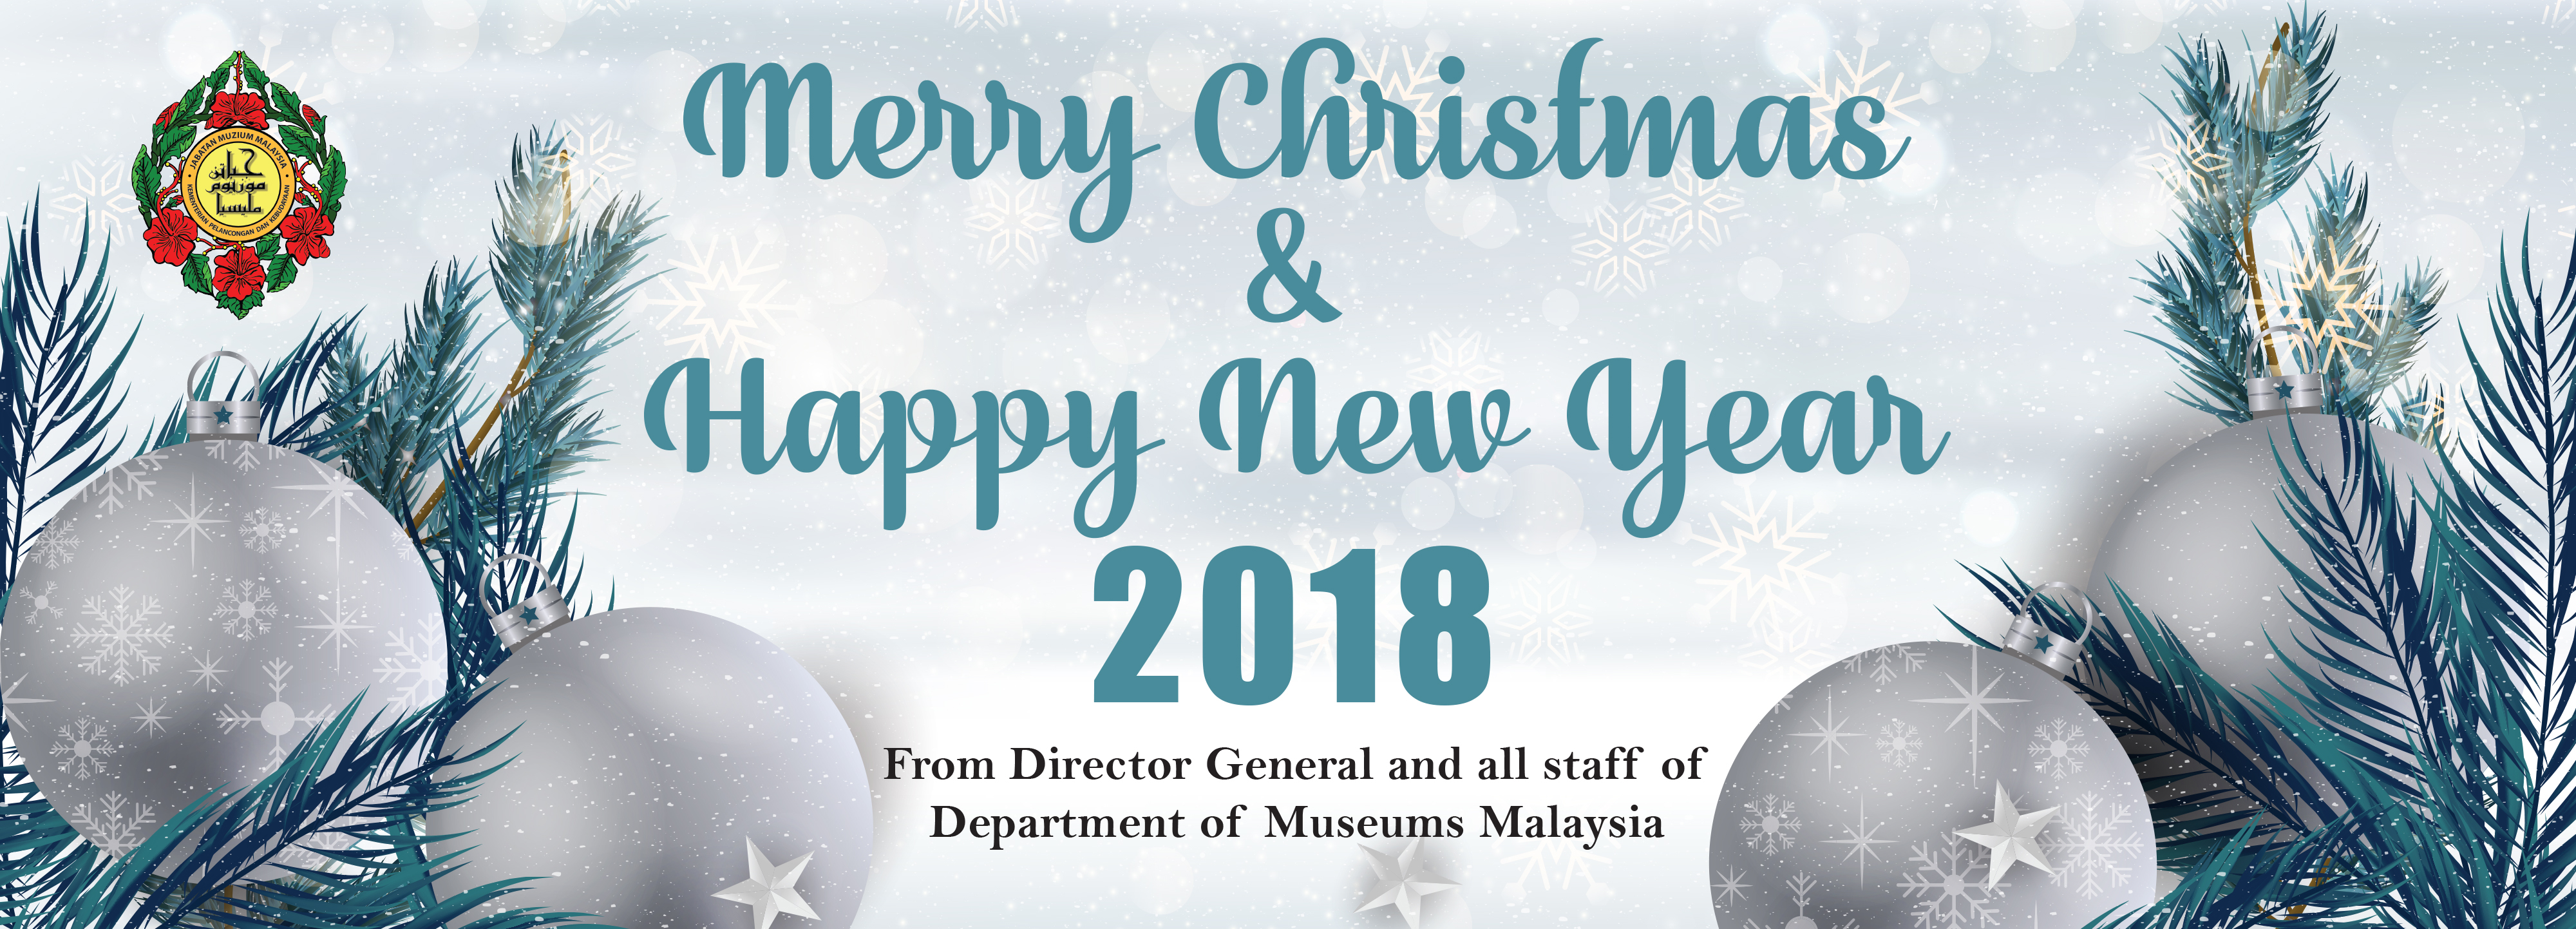 Merry Christmas & Happy New Year 2018 | Department of Museums Malaysia